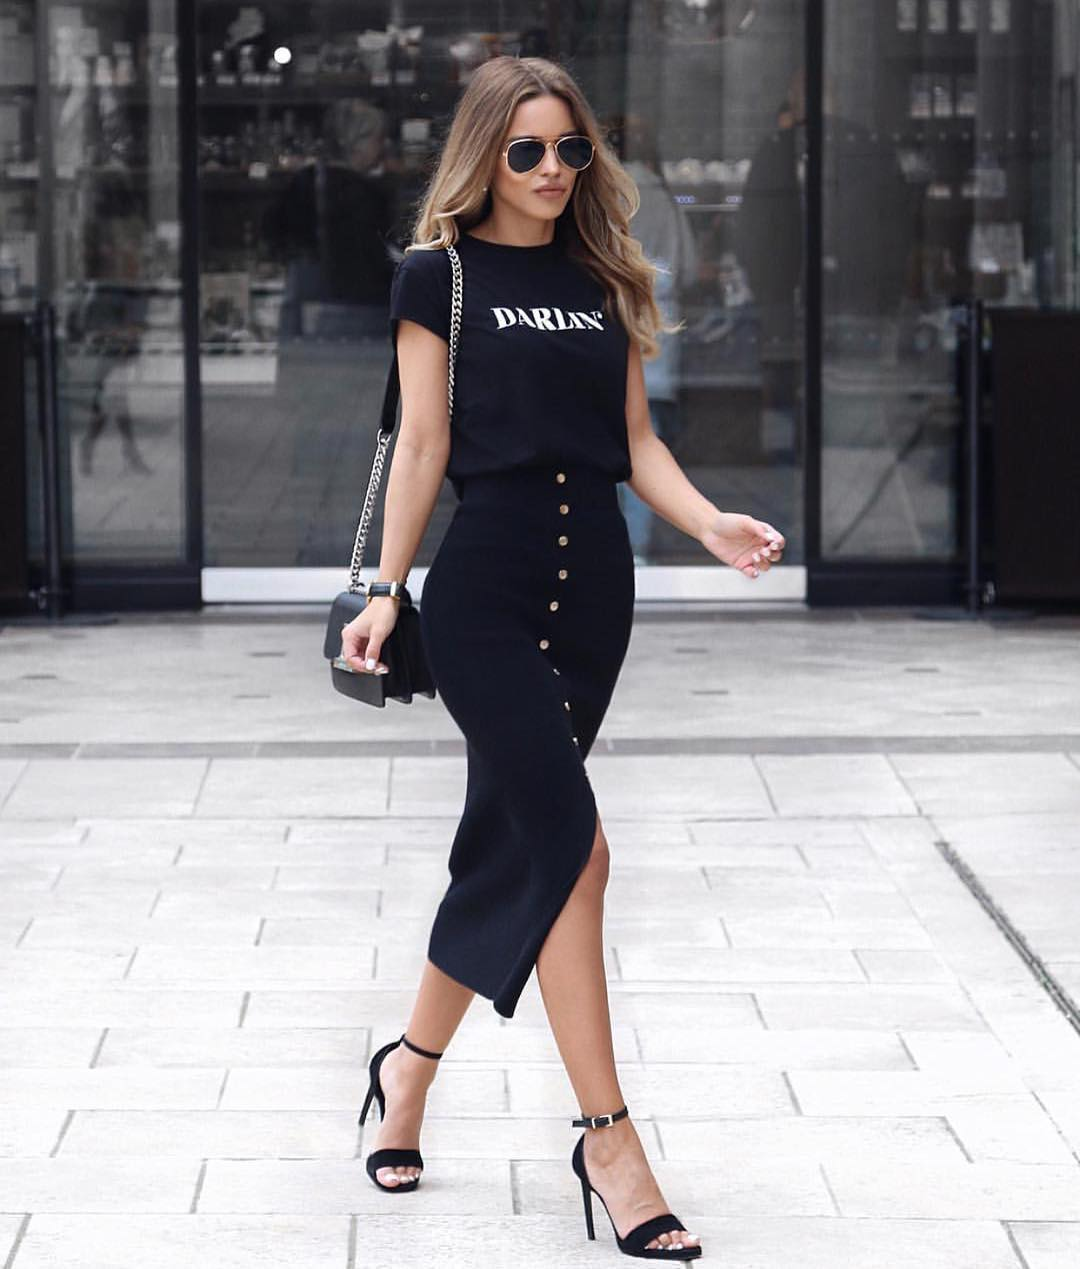 Black Tee And High Rise Front Buttoned Midi Skirt: All In Black Summer Look 2019